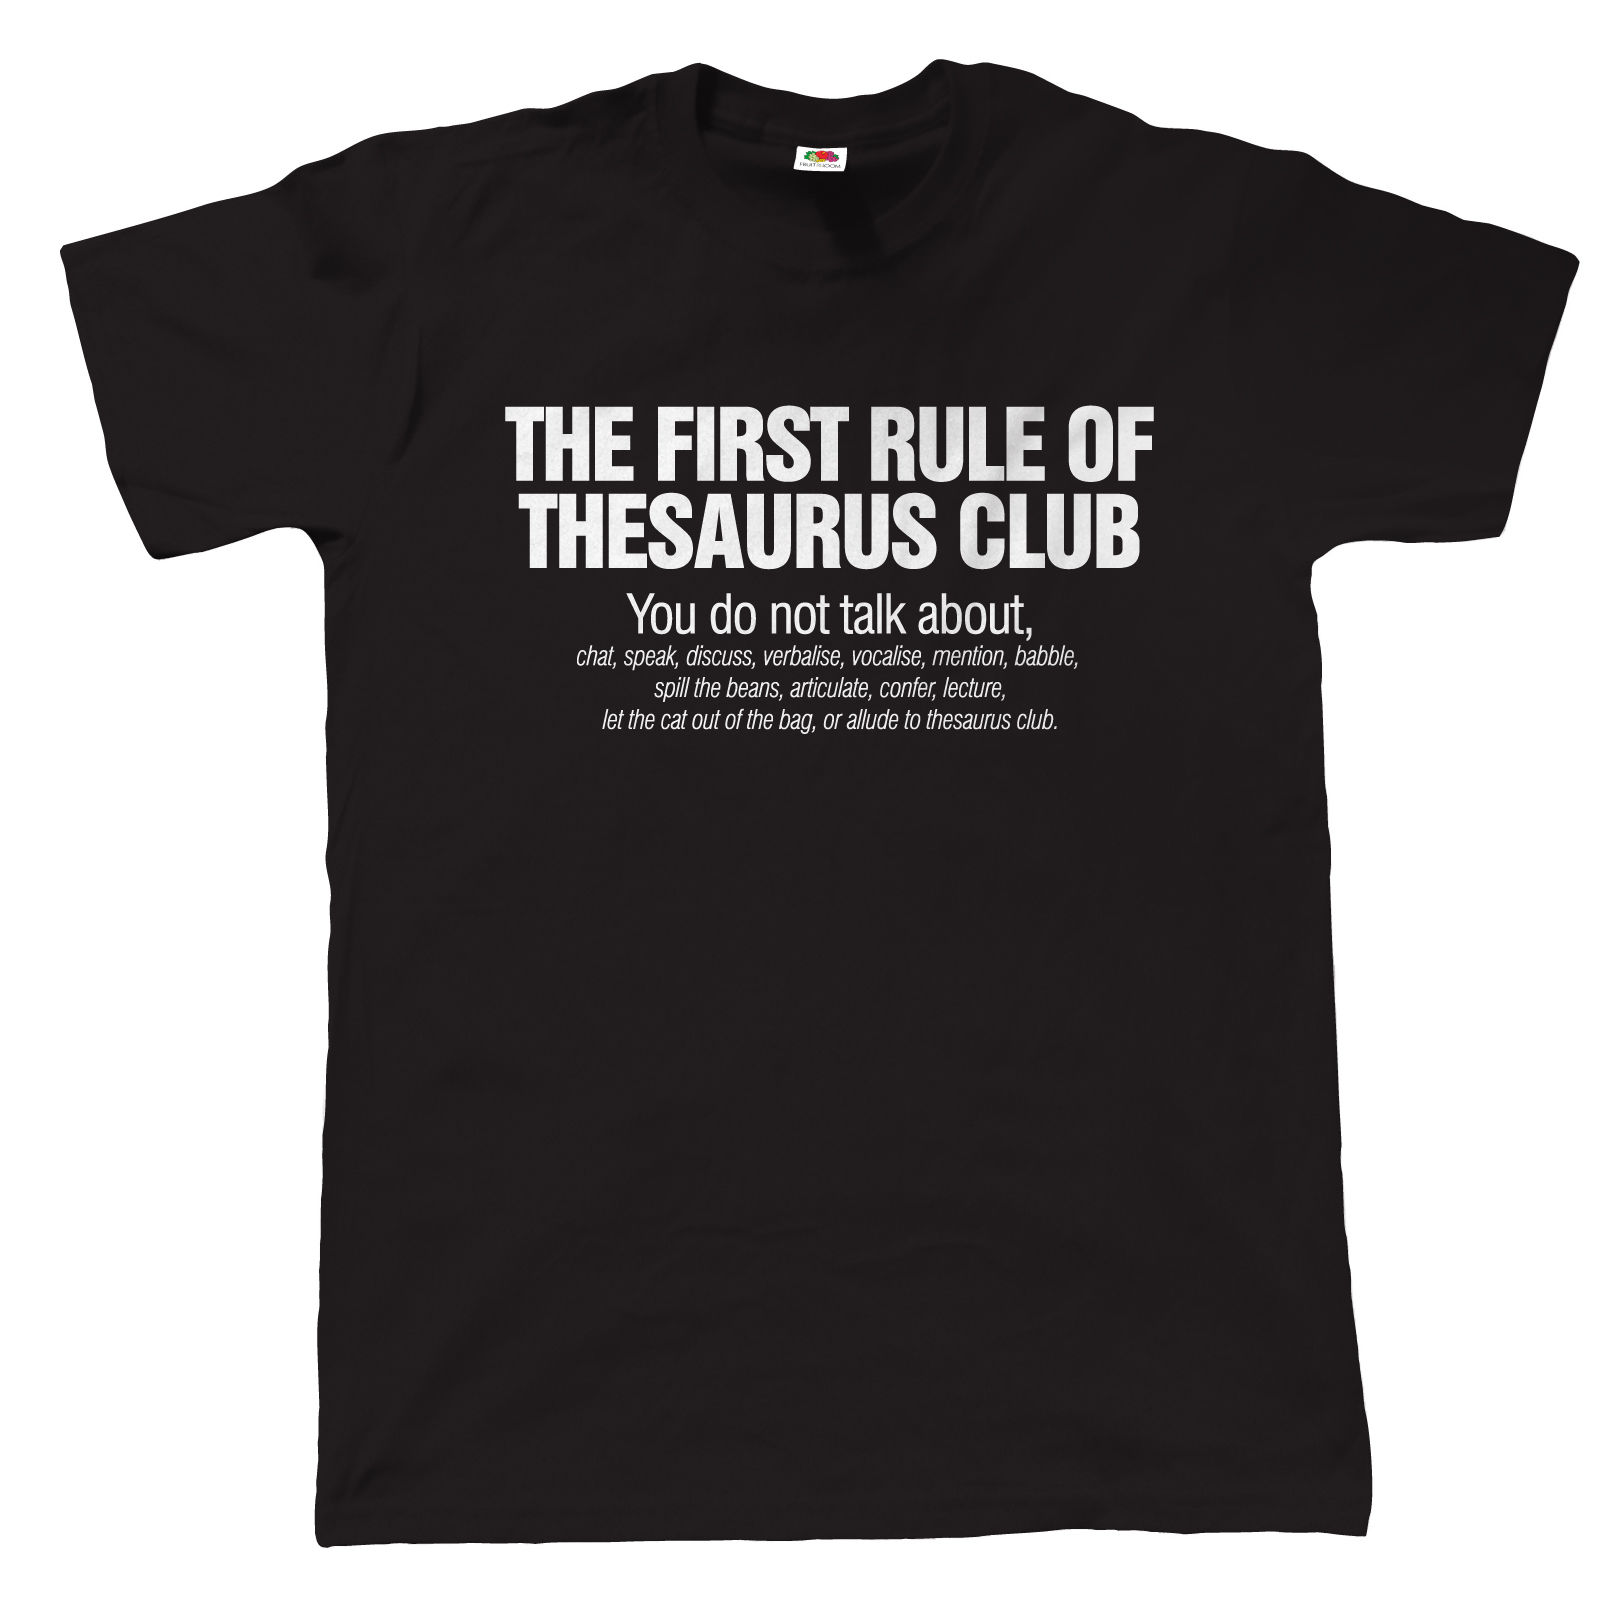 The First Rule Of Thesaurus Club Mens Funny T Shirt - Gift for Dad Fathers Day Printed T-Shirts Short Sleeve Hipster Tee